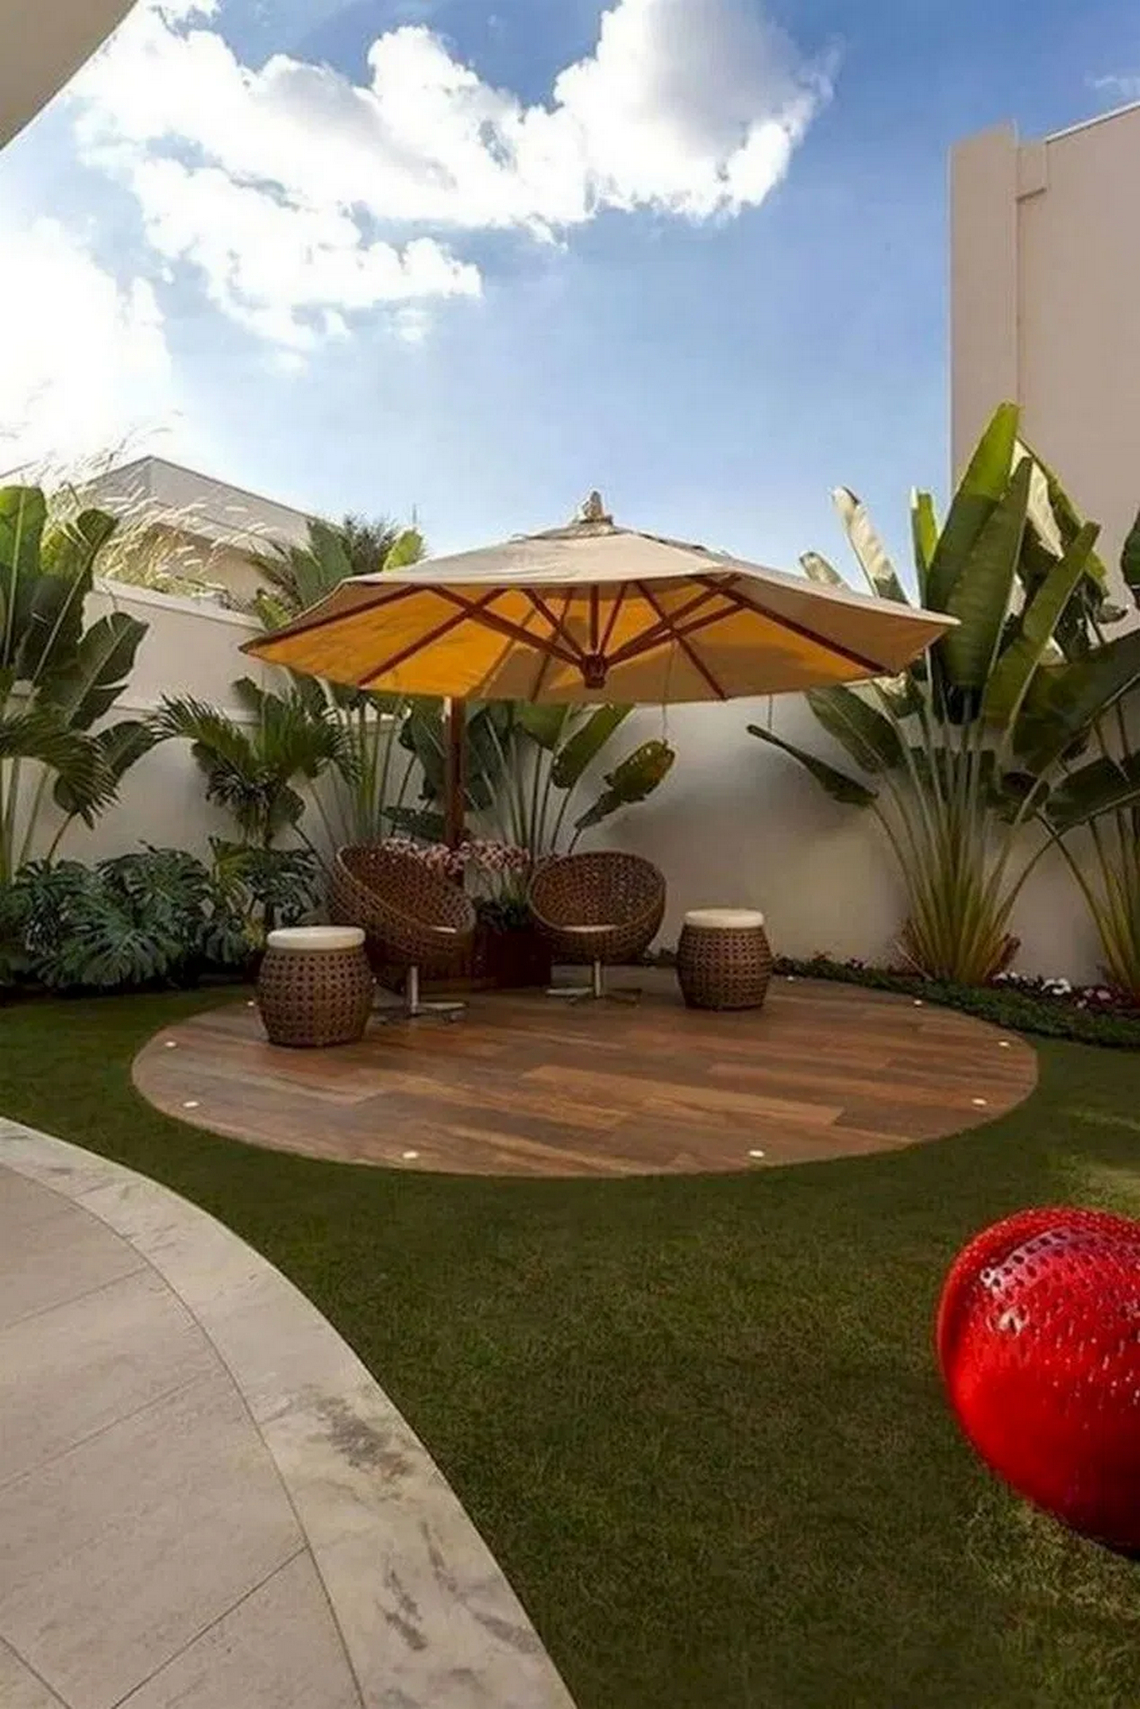 91 Small Backyard Landscape Decoration Models Are Simple And Look Creative 87